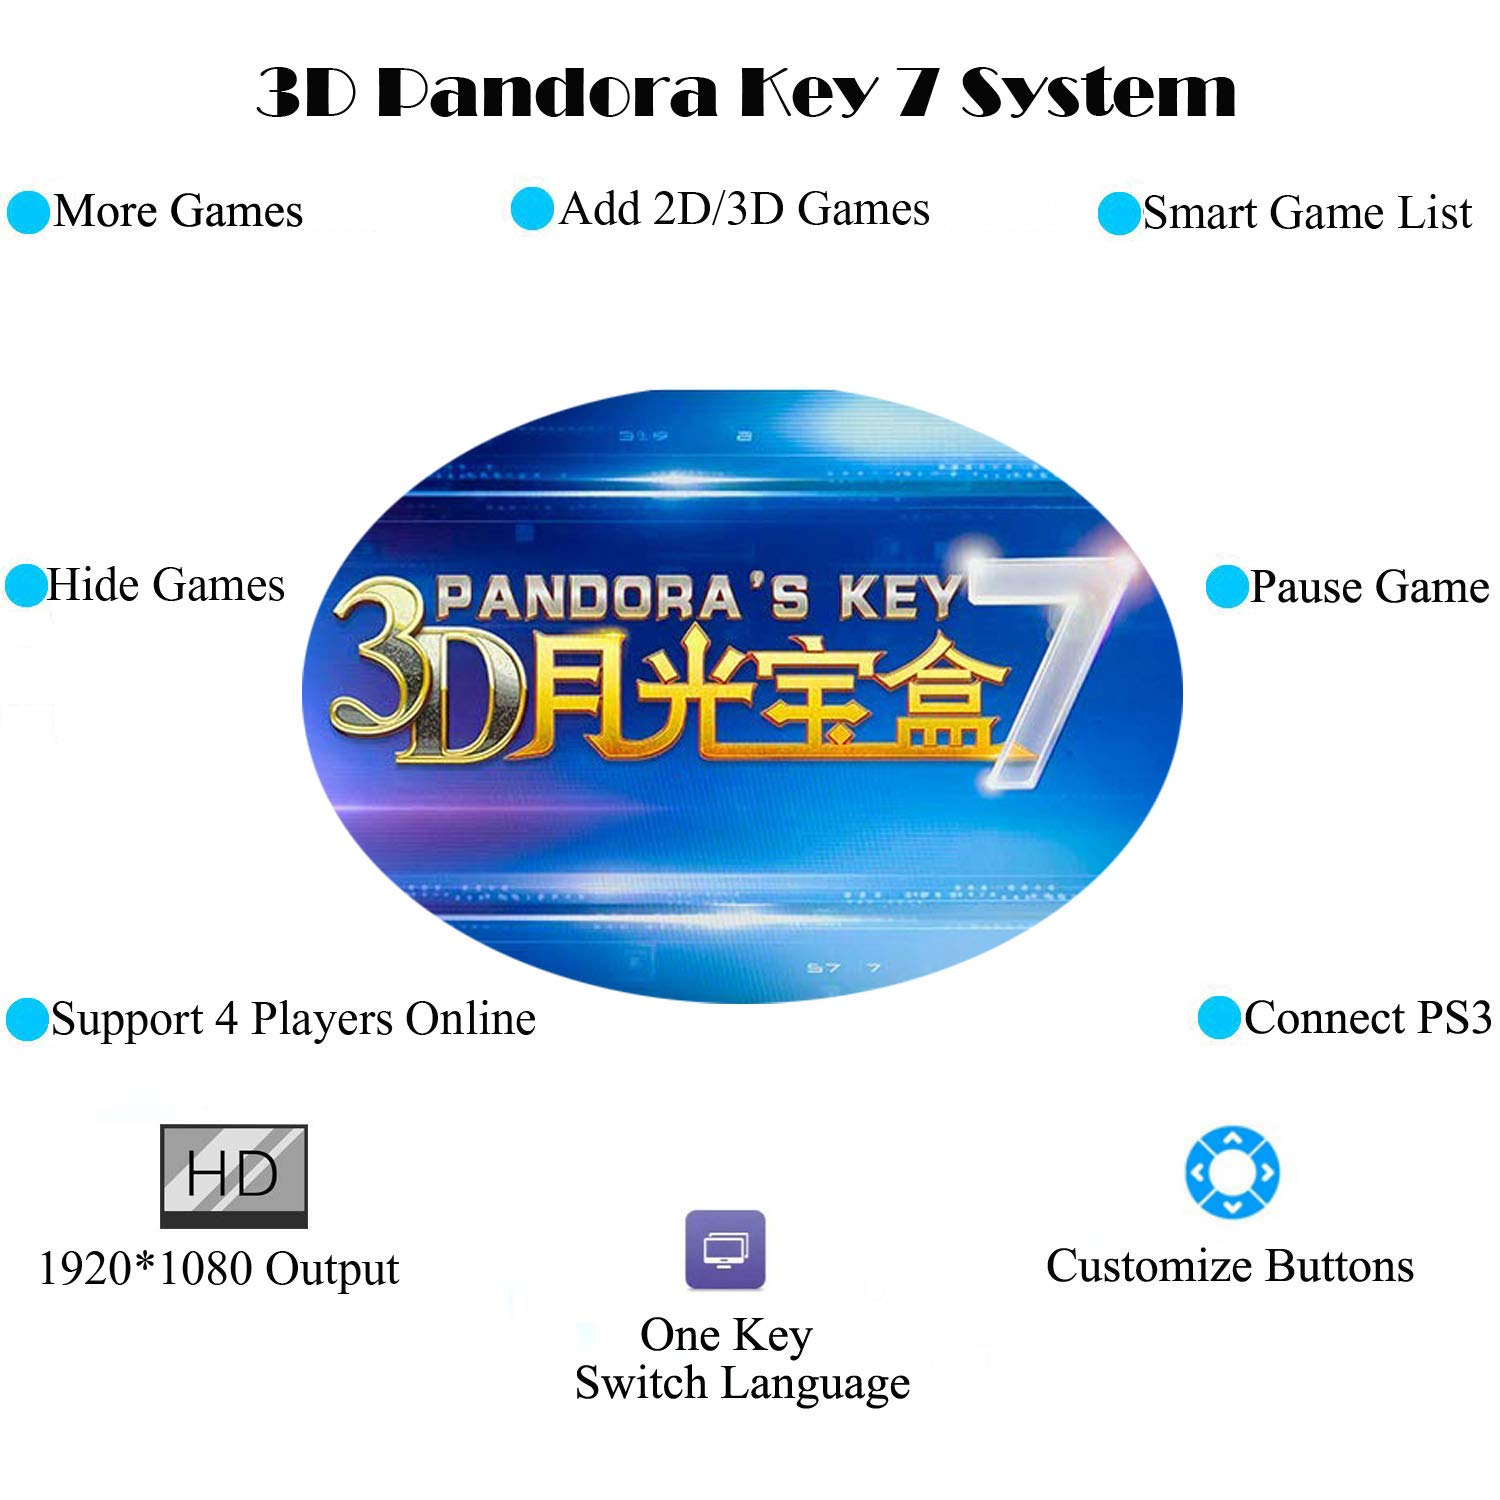 MYMIQEY 3D Pandora Key 7 Arcade Game Console | 2177 Retro HD Games | Add More Games | Full HD (1920x1080) Video | Support Multiplayer Online | 2 Player Game Controls | HDMI/VGA/USB/AUX Audio Output by MYMIQEY (Image #2)